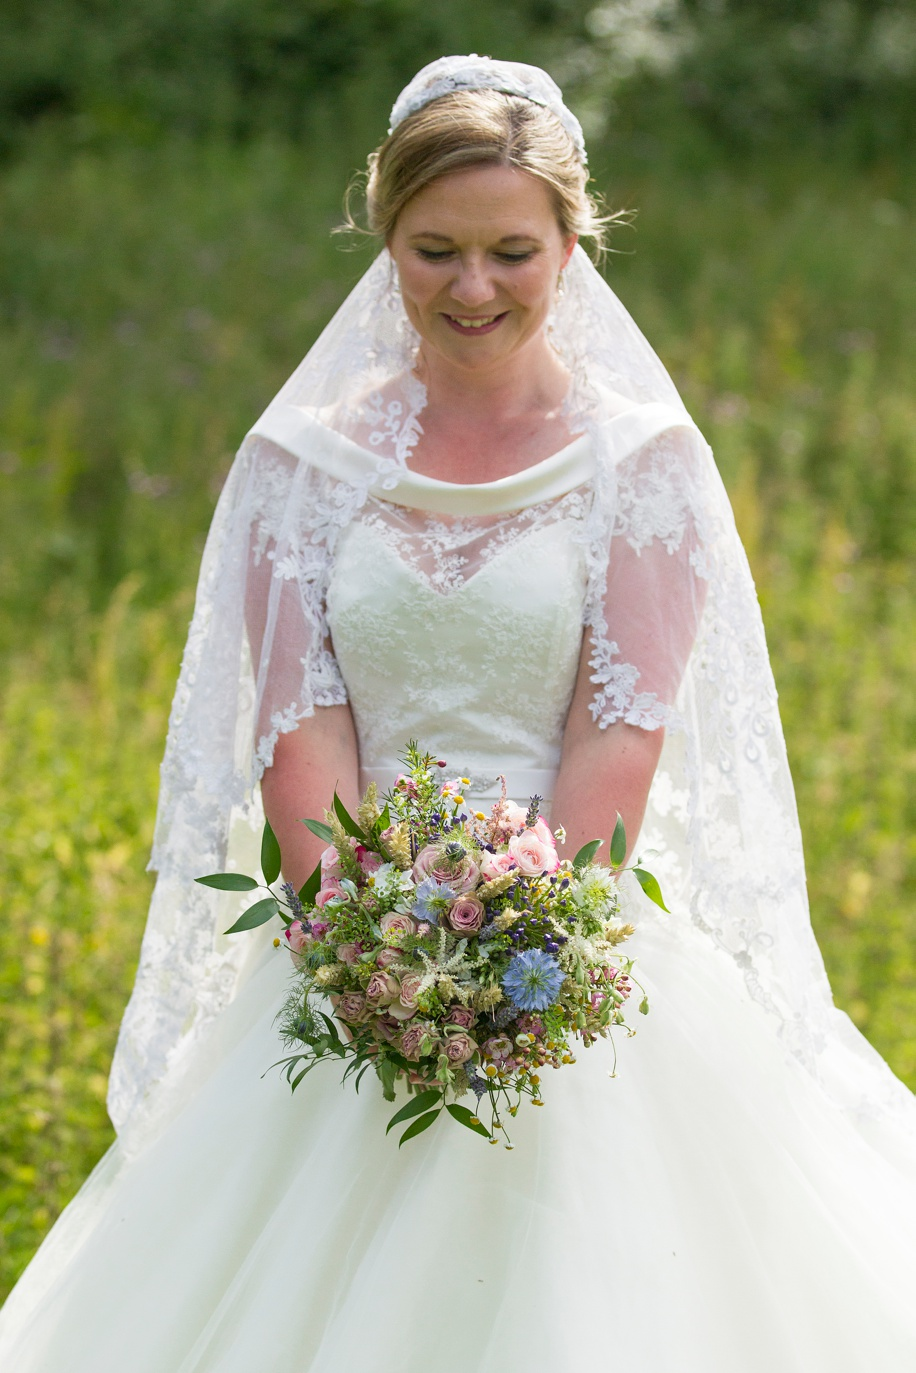 Bride portrait photograph ideas at a Winchester marquee wedding in Hampshire by Martin Bell Photography